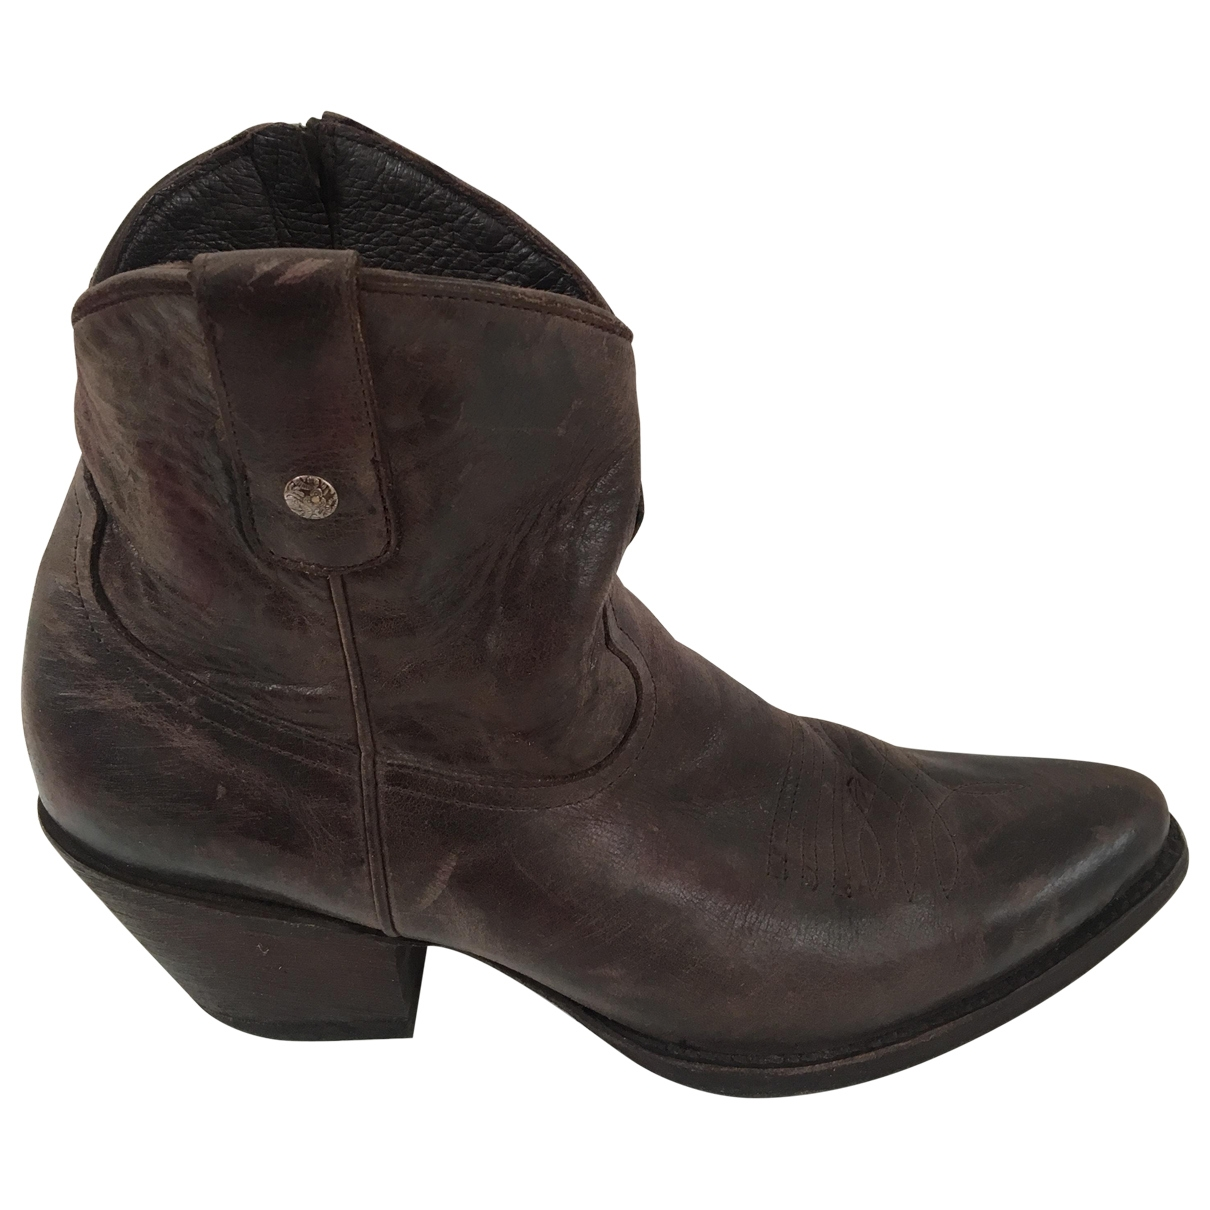 Old Gringo \N Brown Leather Boots for Women 9.5 US